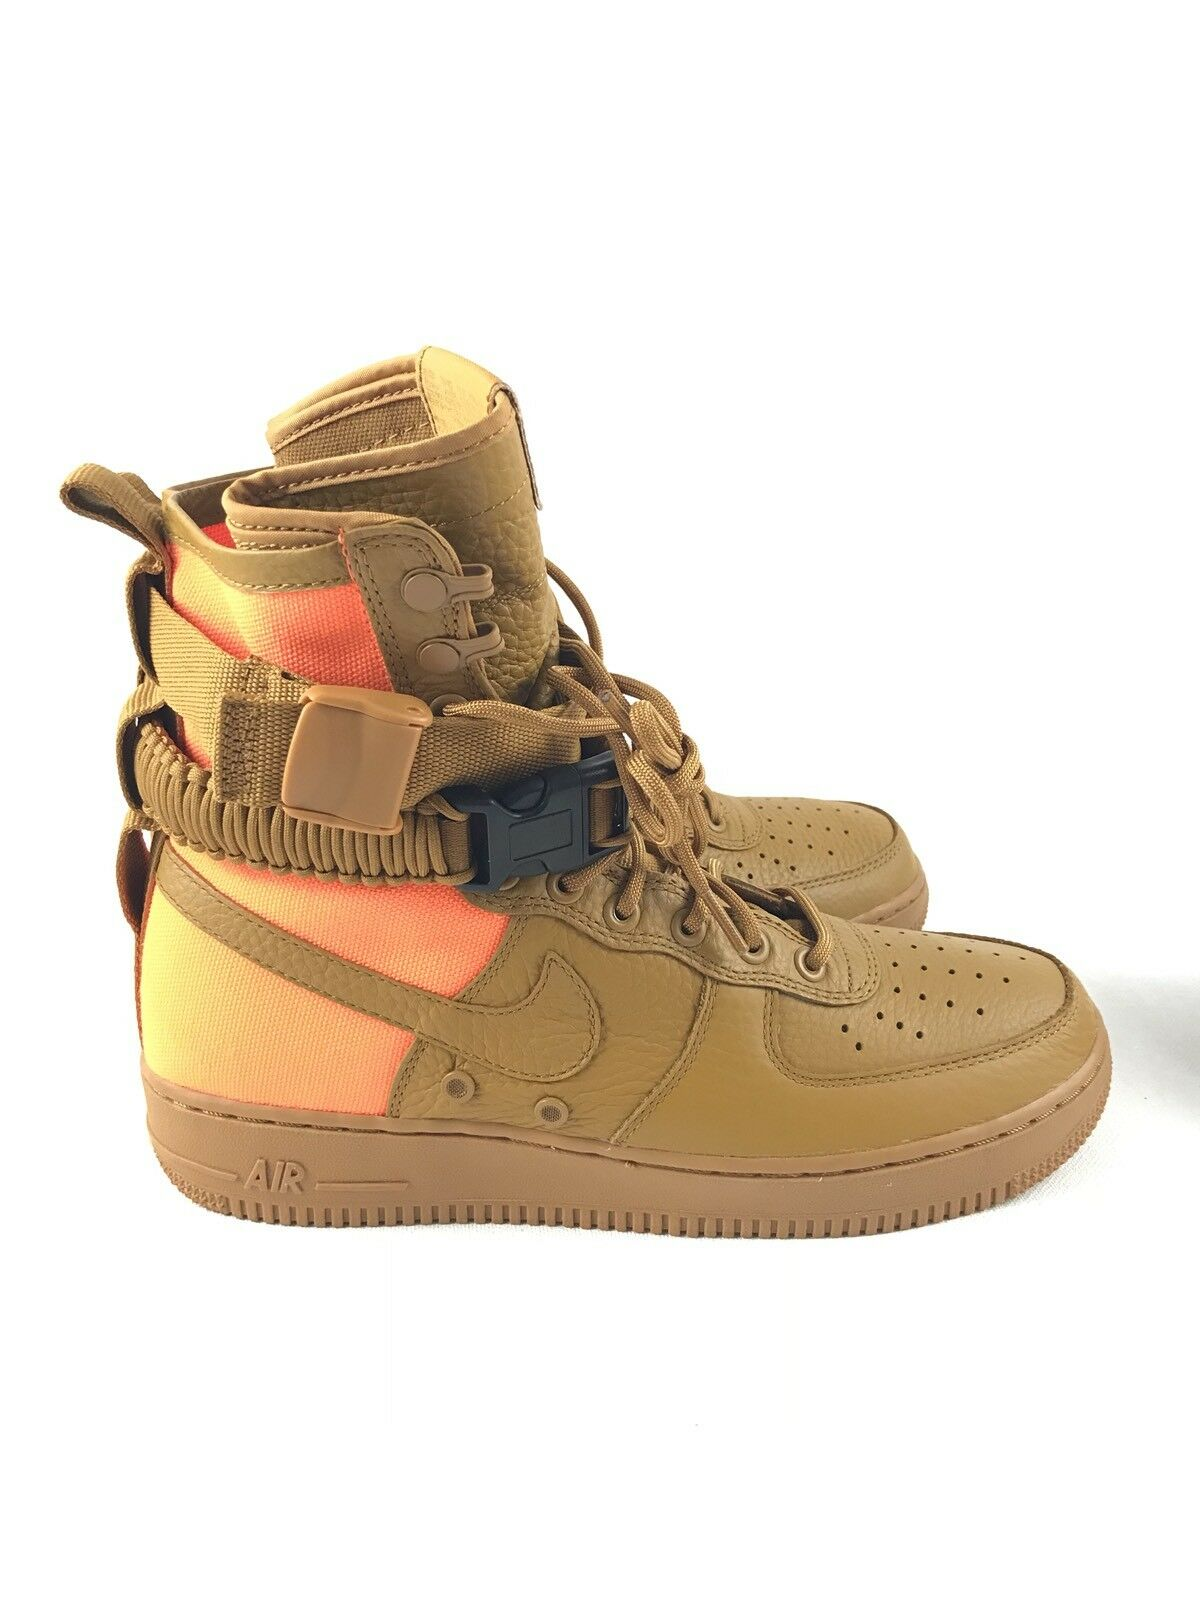 Nike hombre SF AF1 QS desierto 1 campo especial Air Force 1 desierto 903270-778 ocre talla 9 f18357